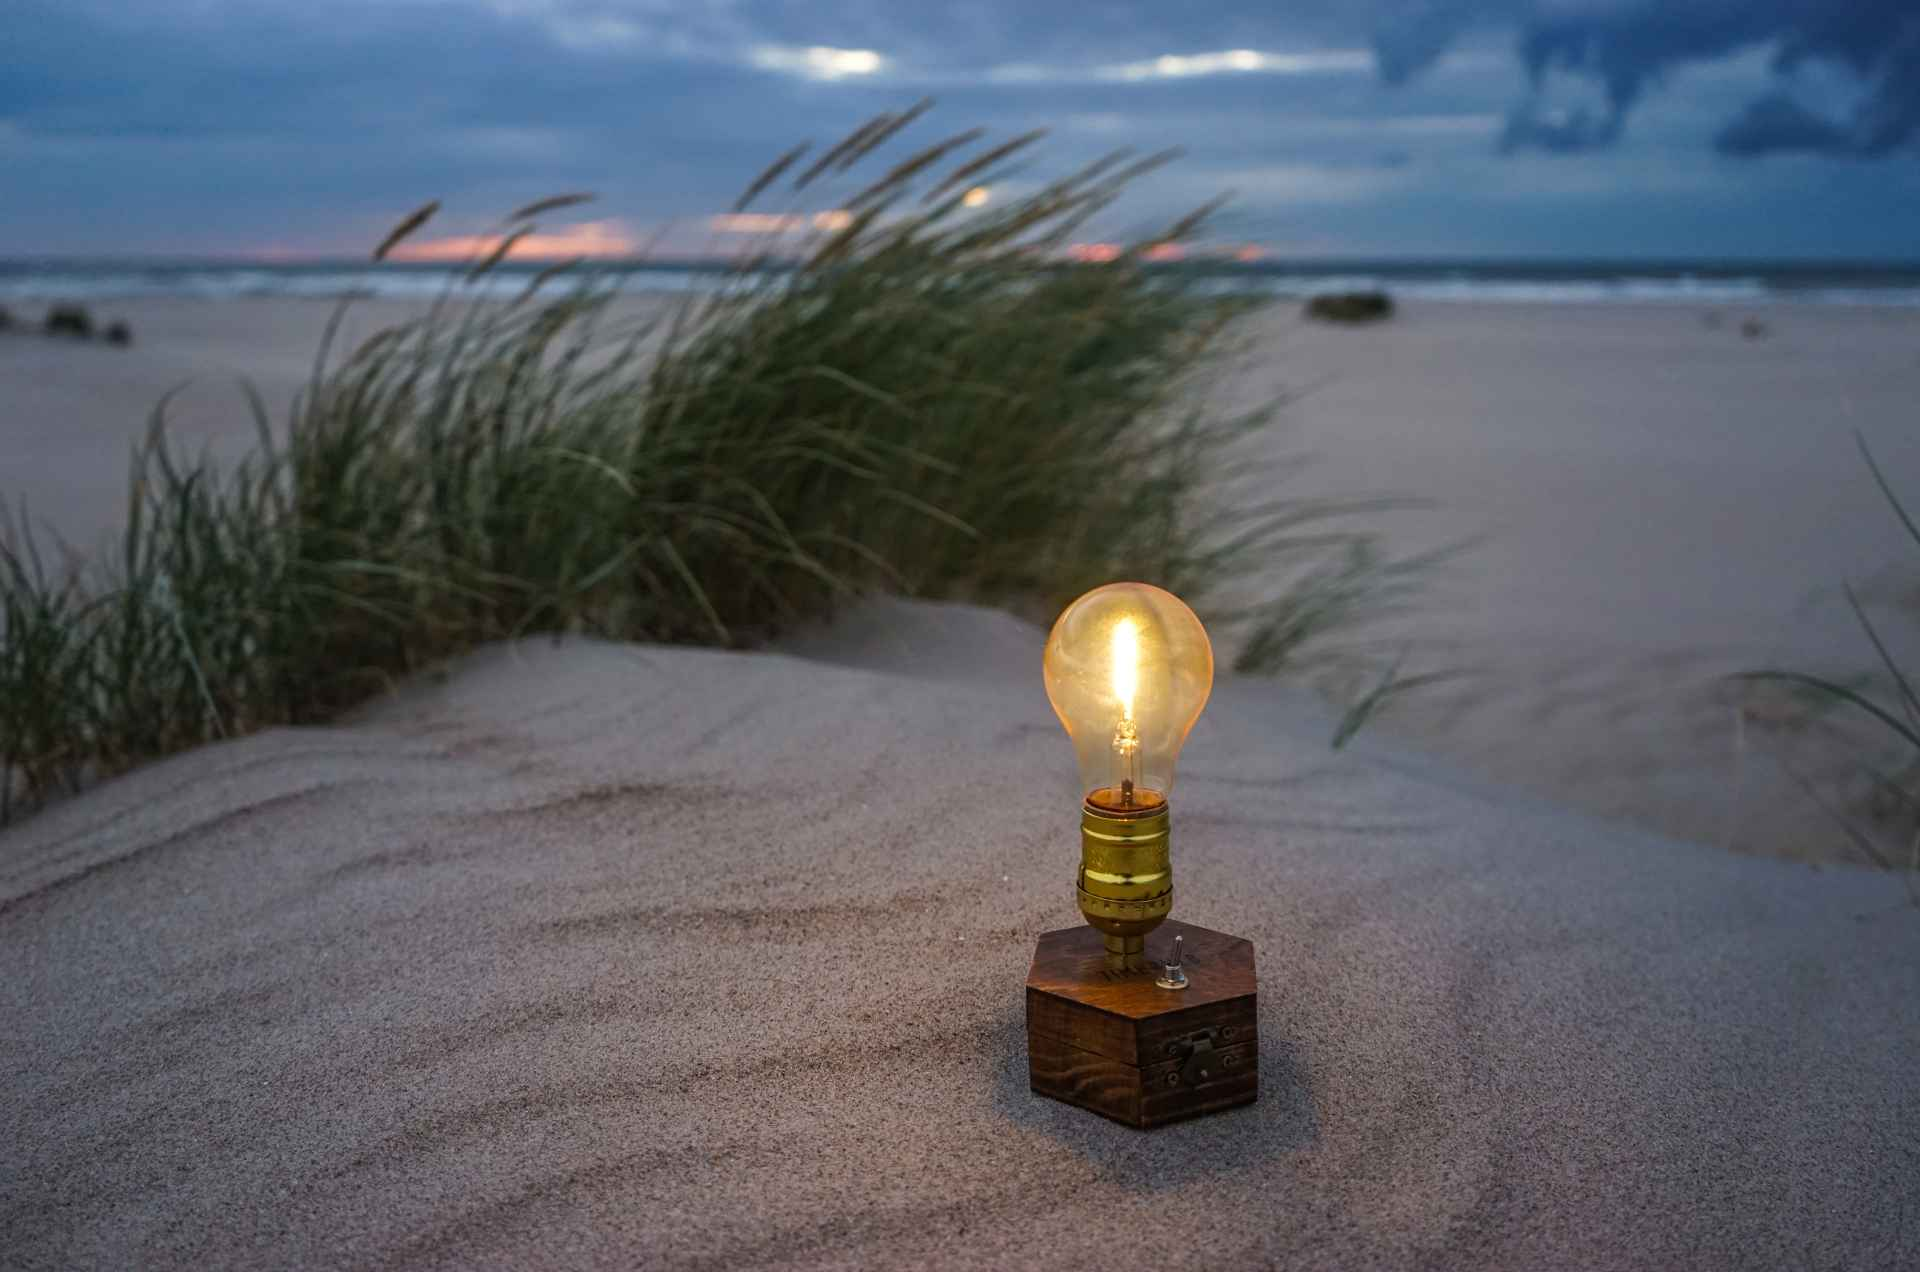 TIMEBULB-wireless-charging-cordless-lamp-hawaii-seaside-beach-picnic-sunset-dinner-party-pacific-ocean-carribean-sea-outdoors-garden-terrace-glamping-camping-edison-tent-bbq-event-design-decoration glamping-gadgets-vintage-cordless-wireless-charging-lamp-picnic-picknick-outdoor-camping-trekking-tent-#clamping-trends-2020-2021-roadtripping-beach-park-hiking-winepicnic-brotzeit-sunset #chicnic #picnic #glamping #camping #date #romanticdate #candlelight #candlelights #candlelightdate #candlelightdinner #travel #travelgadgets #outdoors #picniclamp #winepicnic #vesper #brotzeit #oktoberfest #timebulb #timebulbmoment #timebulbdinner #wedding #wedding2021 #weddingdecor #weddingtrends #wirelesslamp #cordlesslamp #tilmannschlootz #trends2021 #designtrends2021 #productdesign #tentlamp #gourmetpicnic #tabledecoration #tablelamp #festival #festivalstyle #festivals2020 #bohostyle #vtg